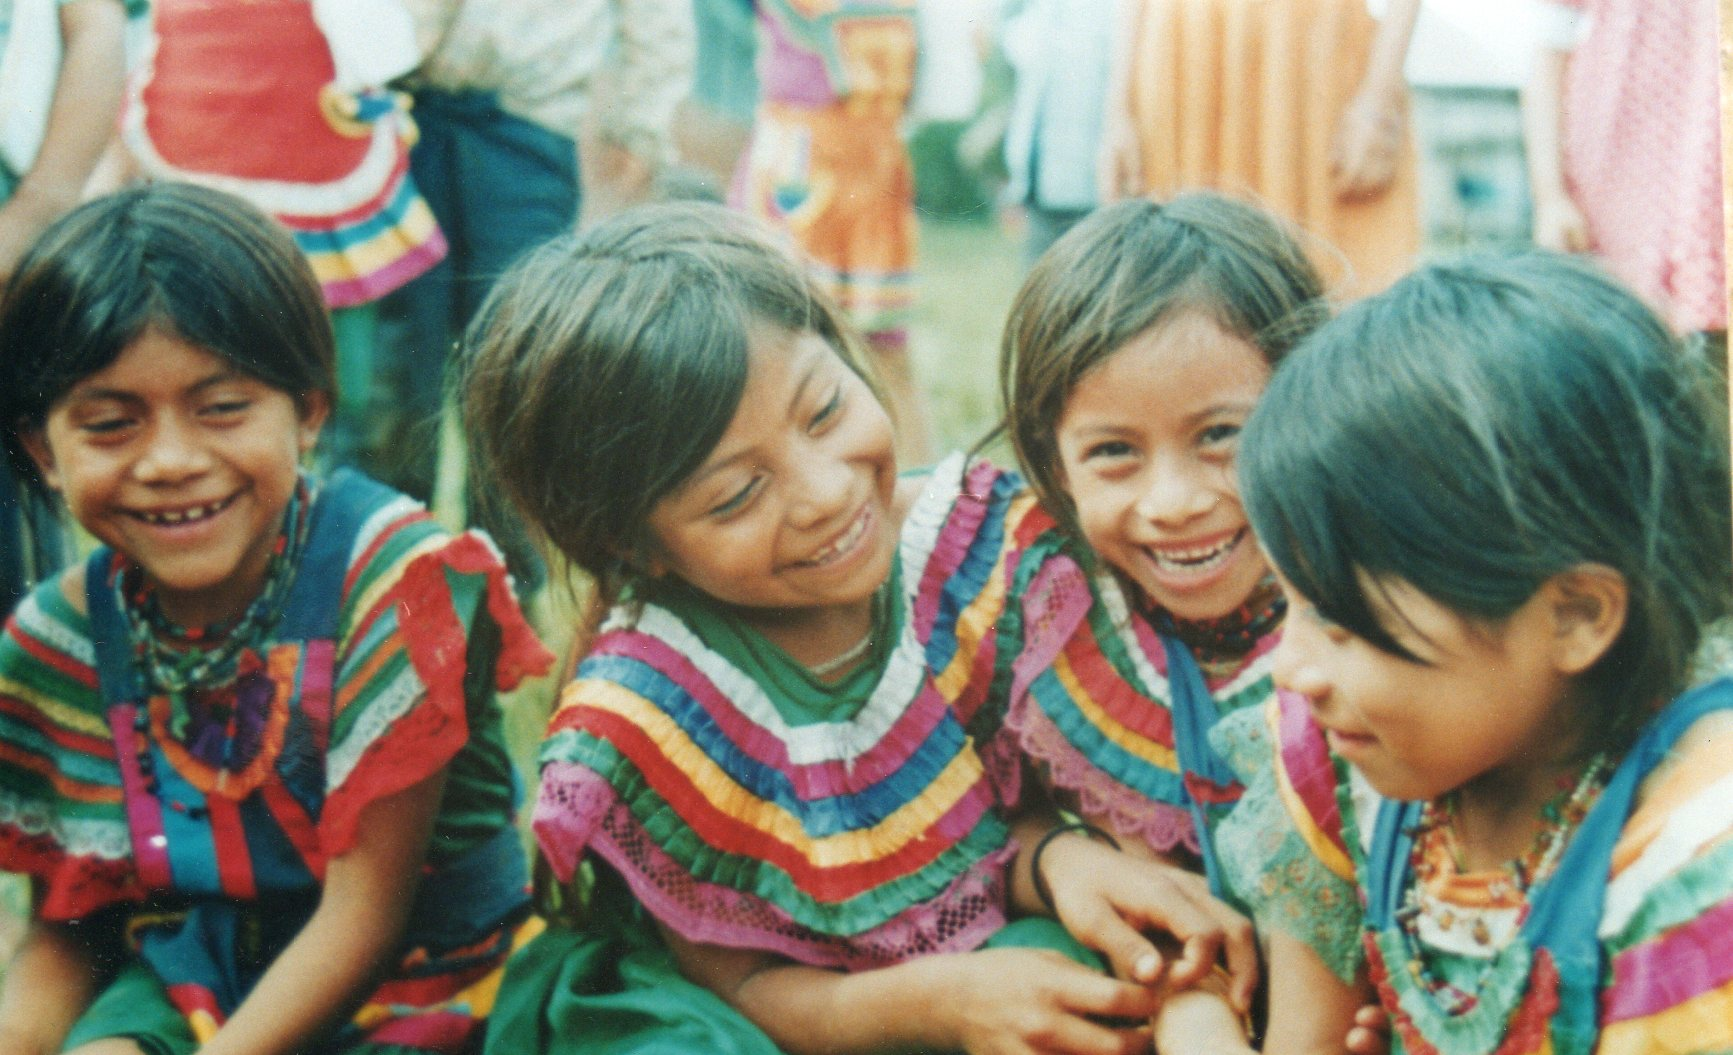 chiapas mexico girls